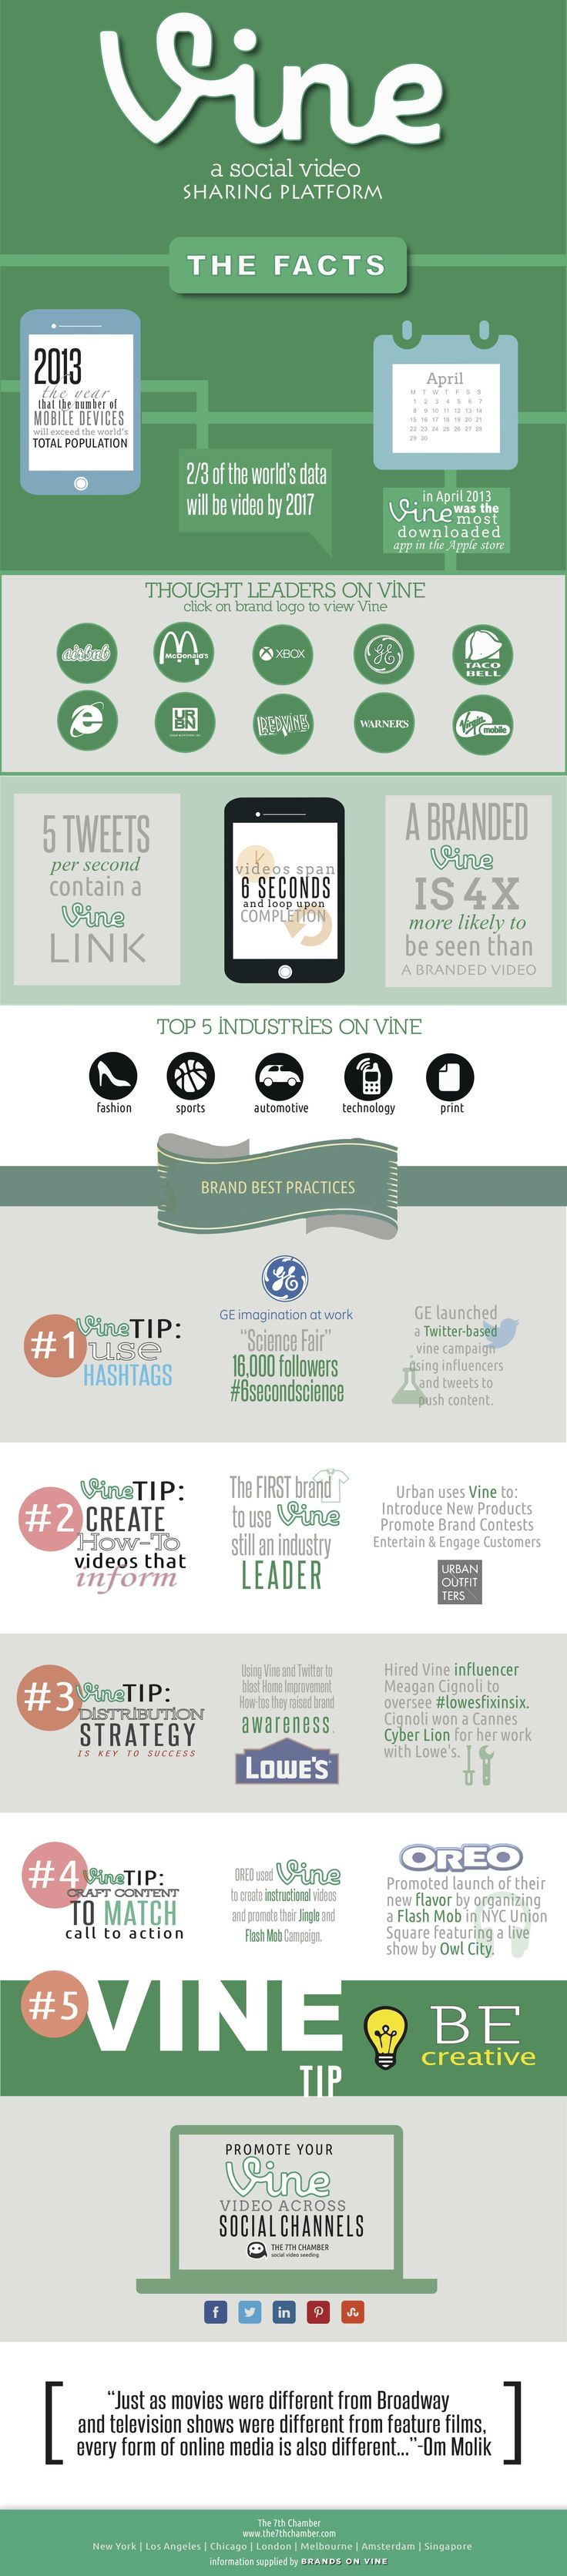 A great #infographic about social media platform Vine